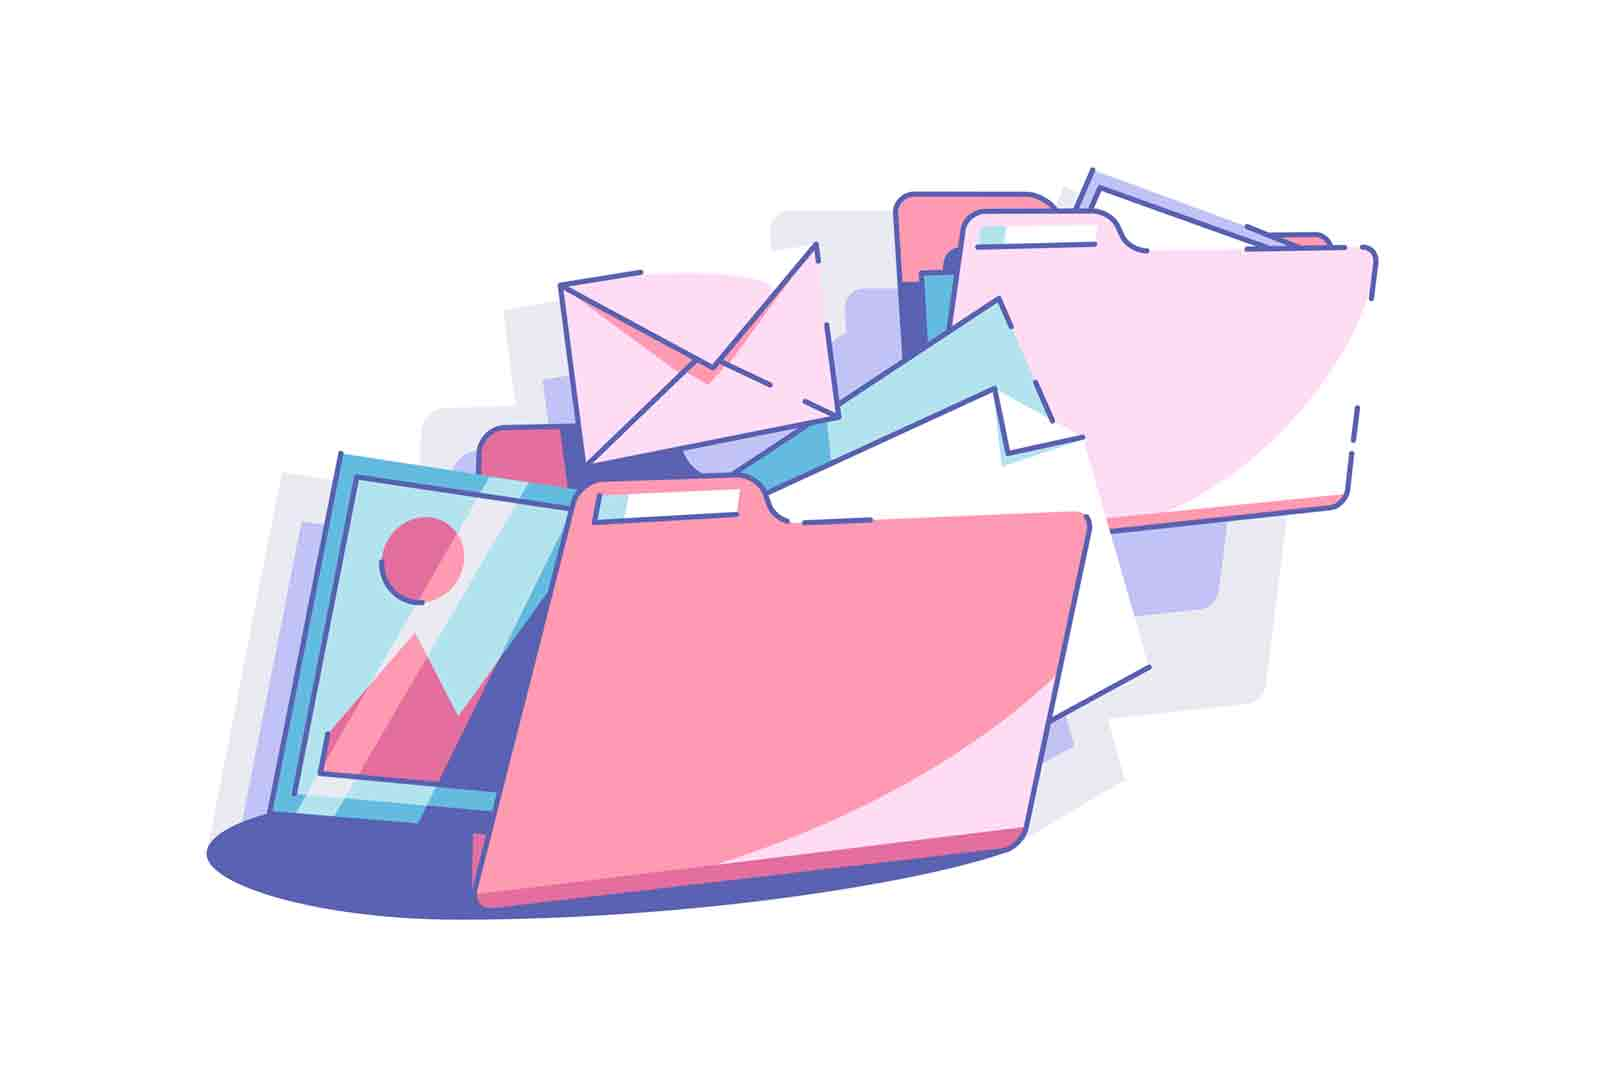 Sort out files to folders vector illustration. Colourful envelopes and folders in mess. Space organizing and management concept.